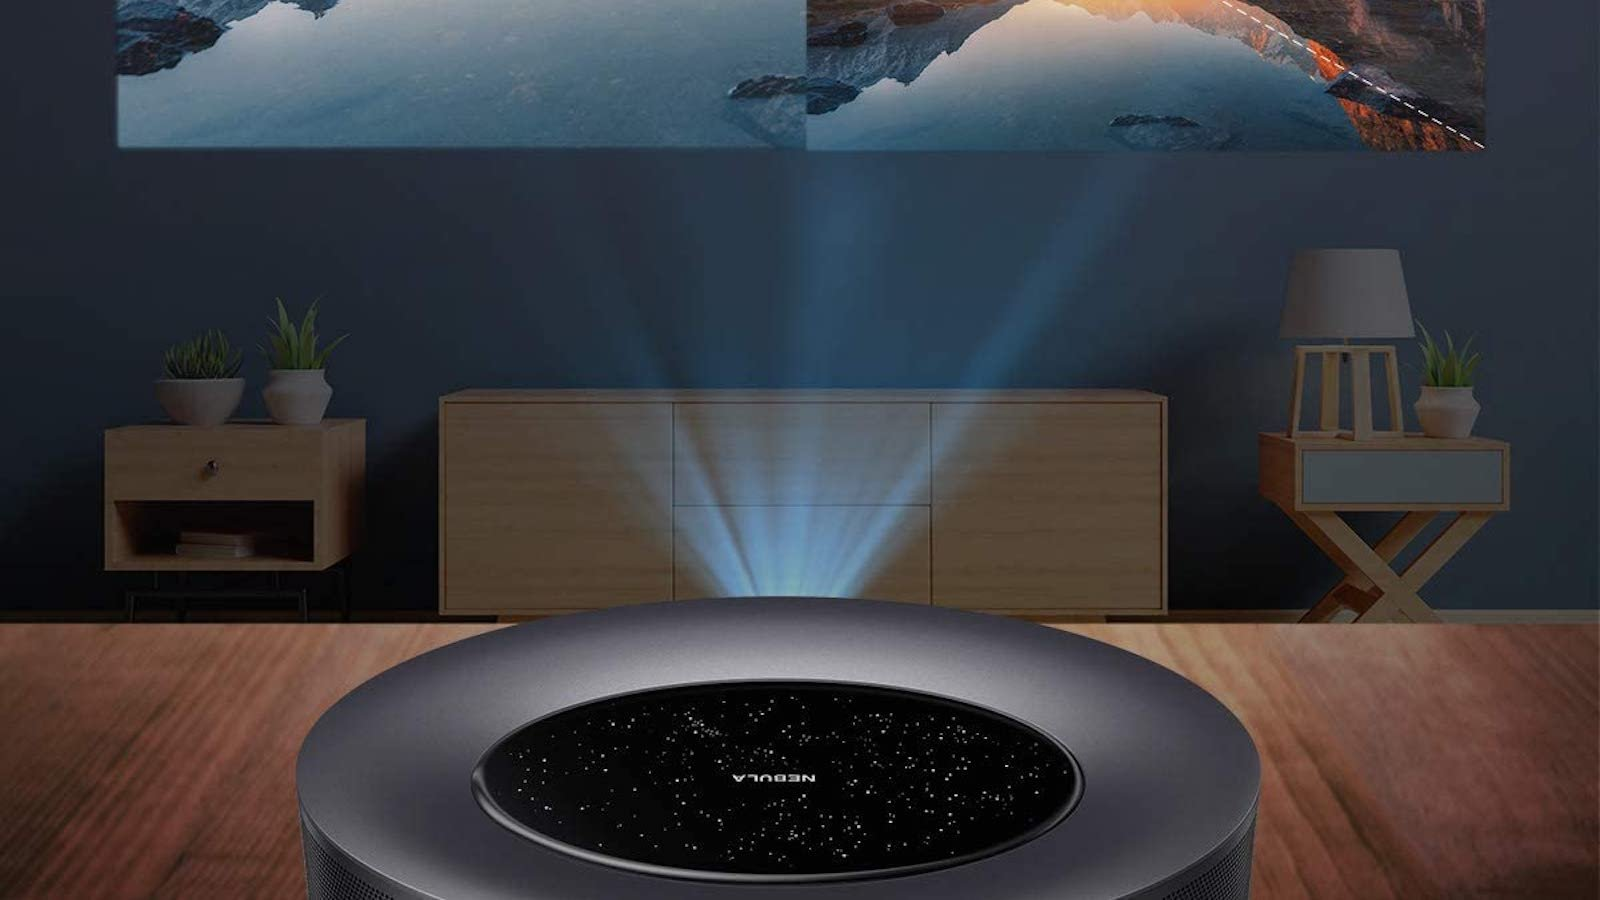 Anker Nebula Cosmos Max 4K home projector upscales all of your old content